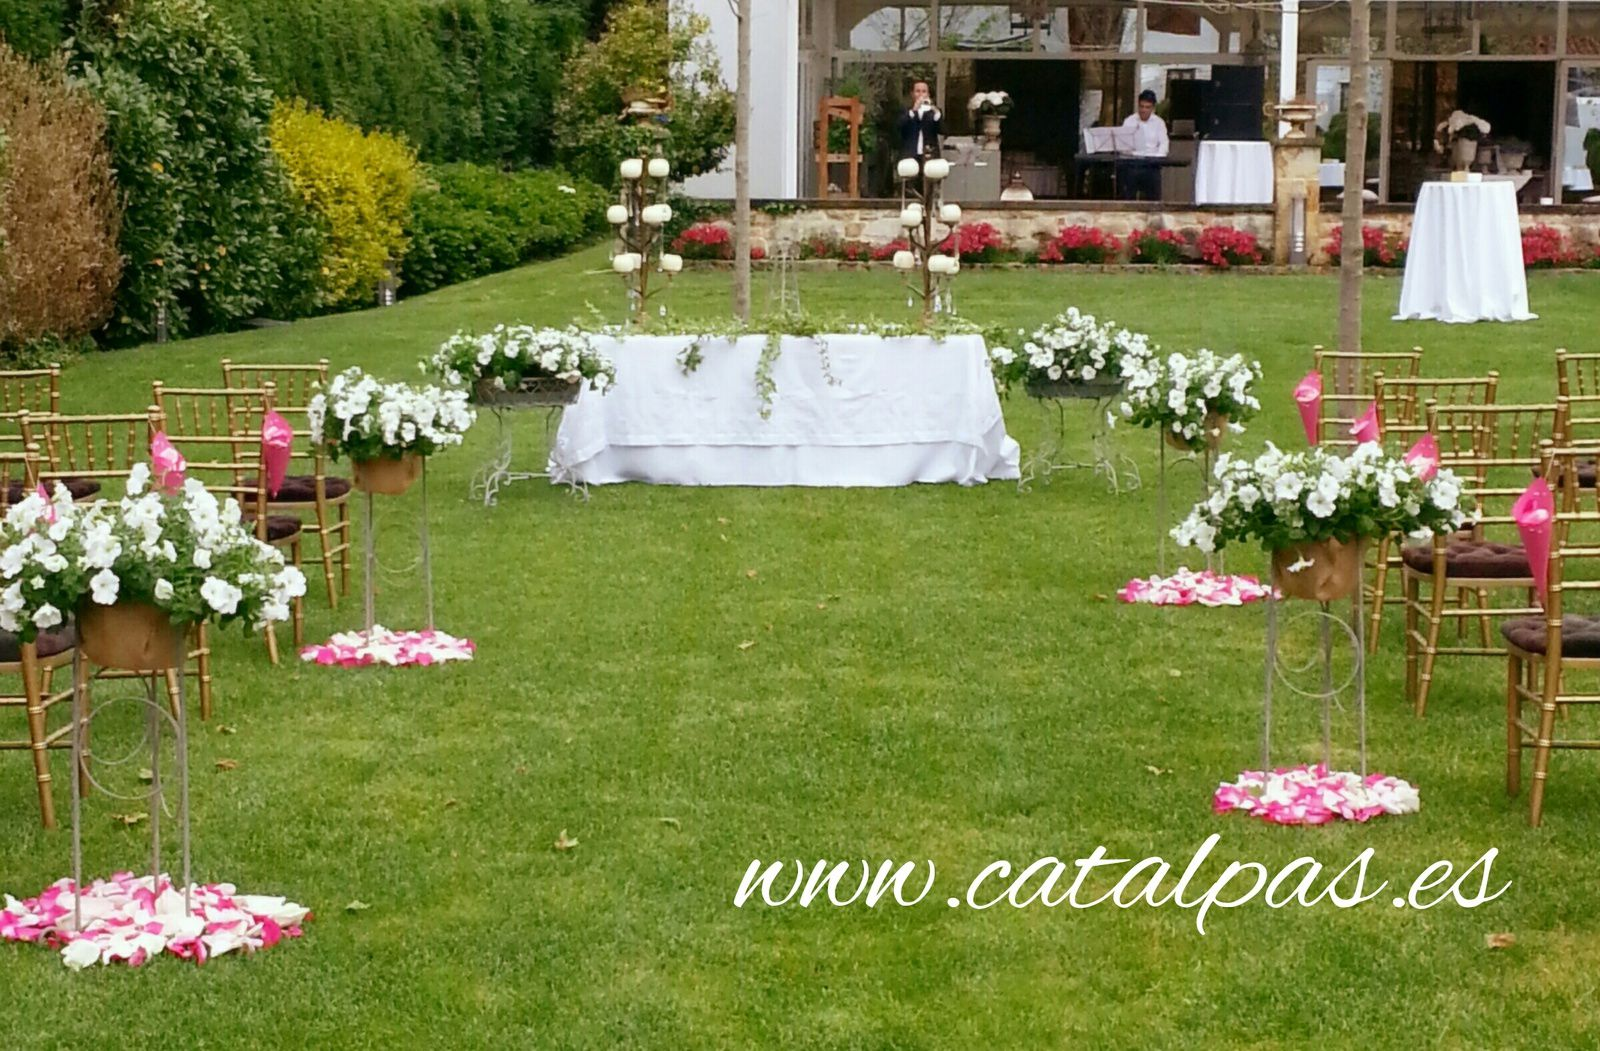 #catalpas #bodas2016 #ceremonia